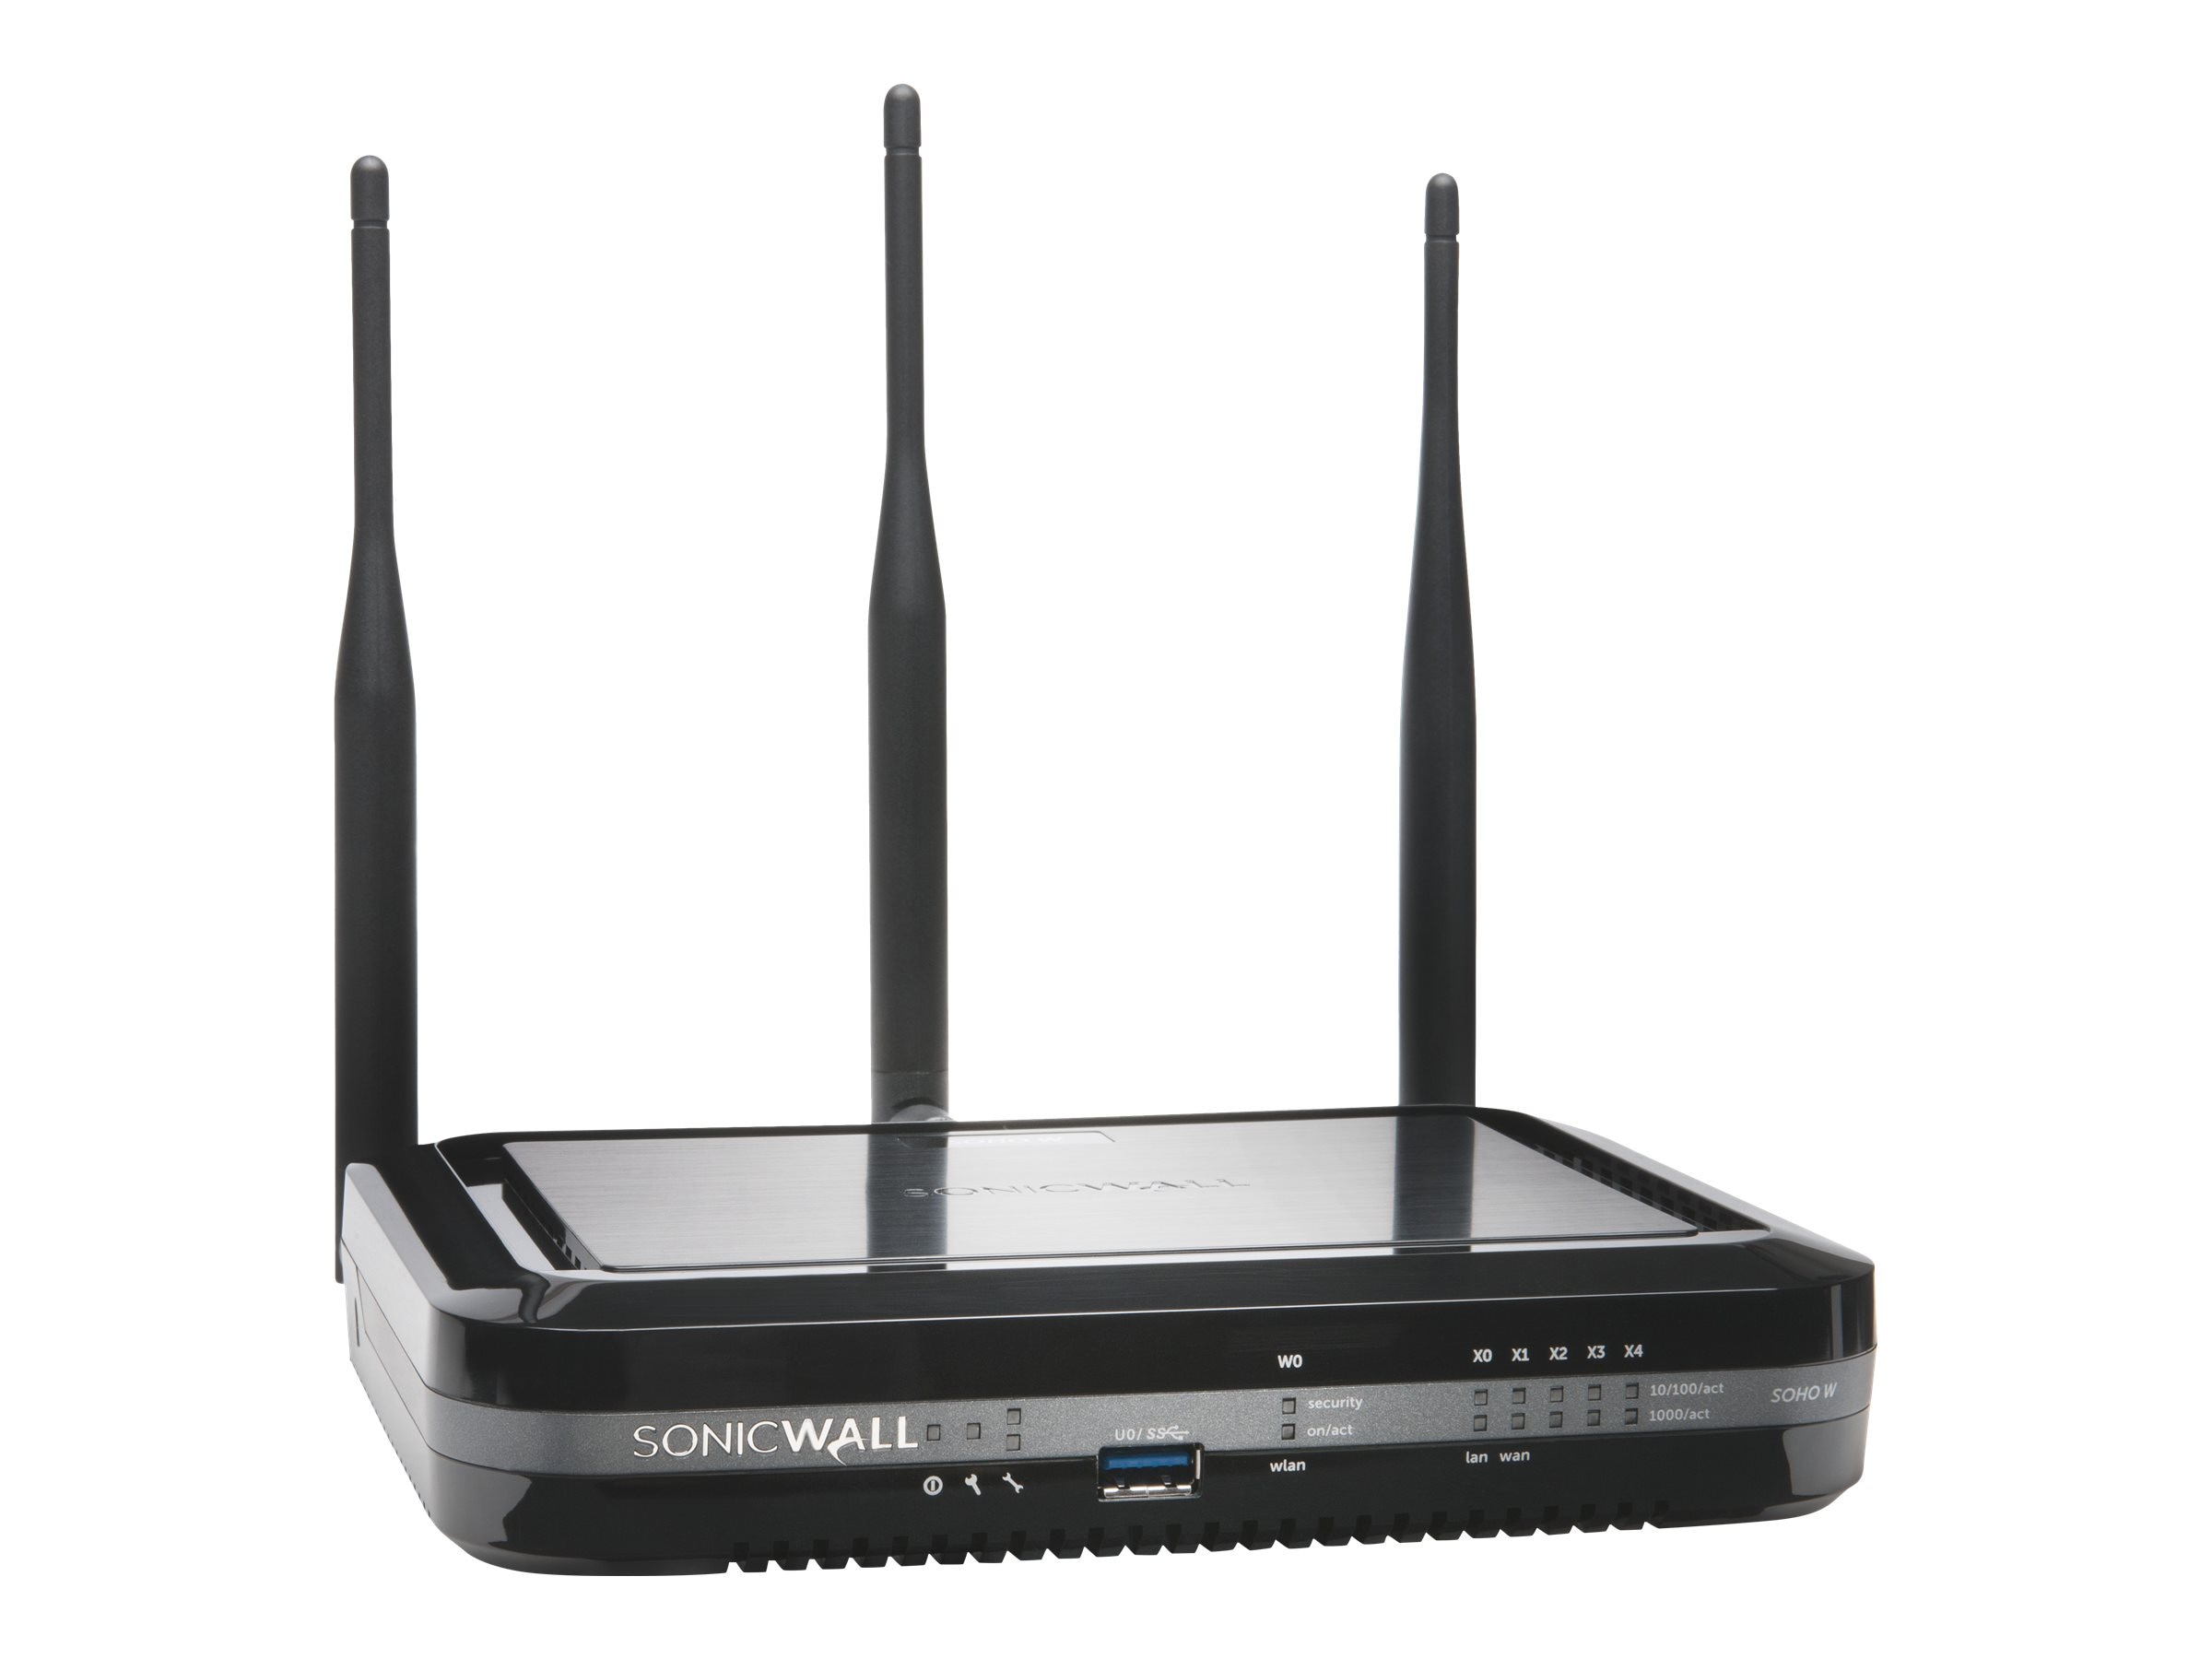 SonicWALL 01-SSC-0648 Image 3